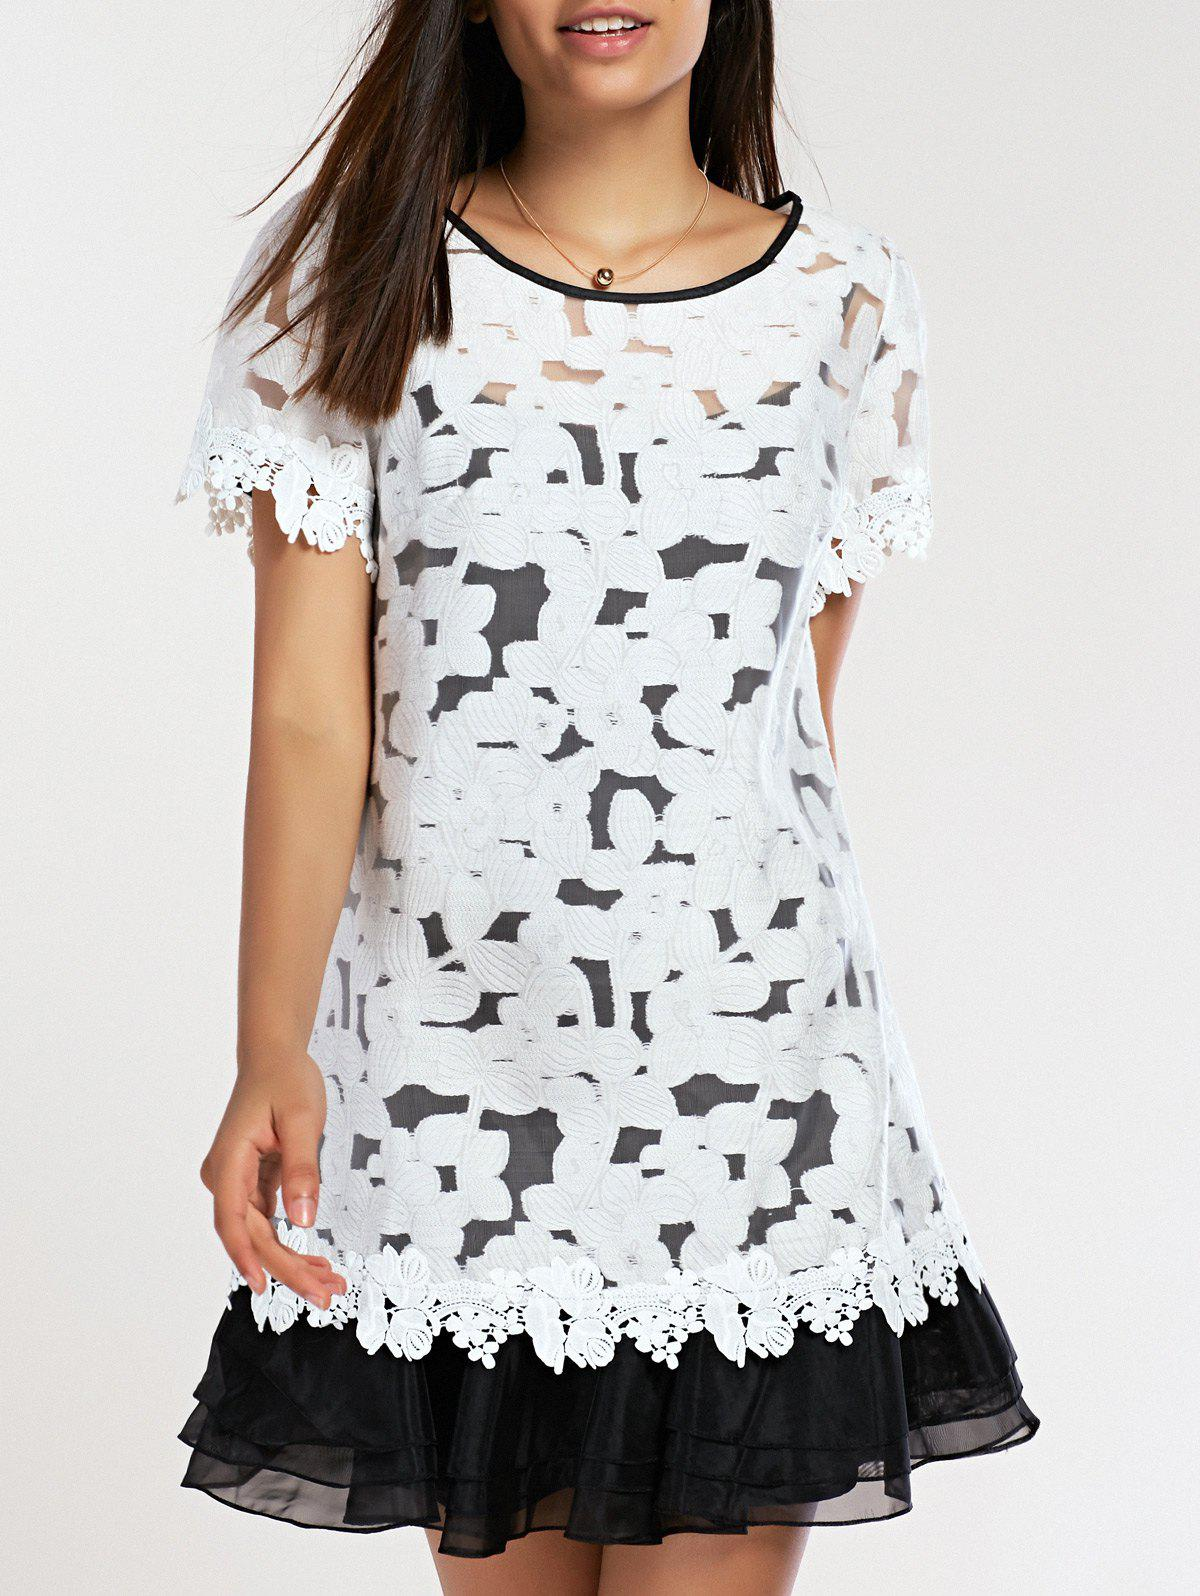 Stylish Womens Jewel Neck Organza Lace Dress TwinsetWomen<br><br><br>Size: L<br>Color: WHITE AND BLACK